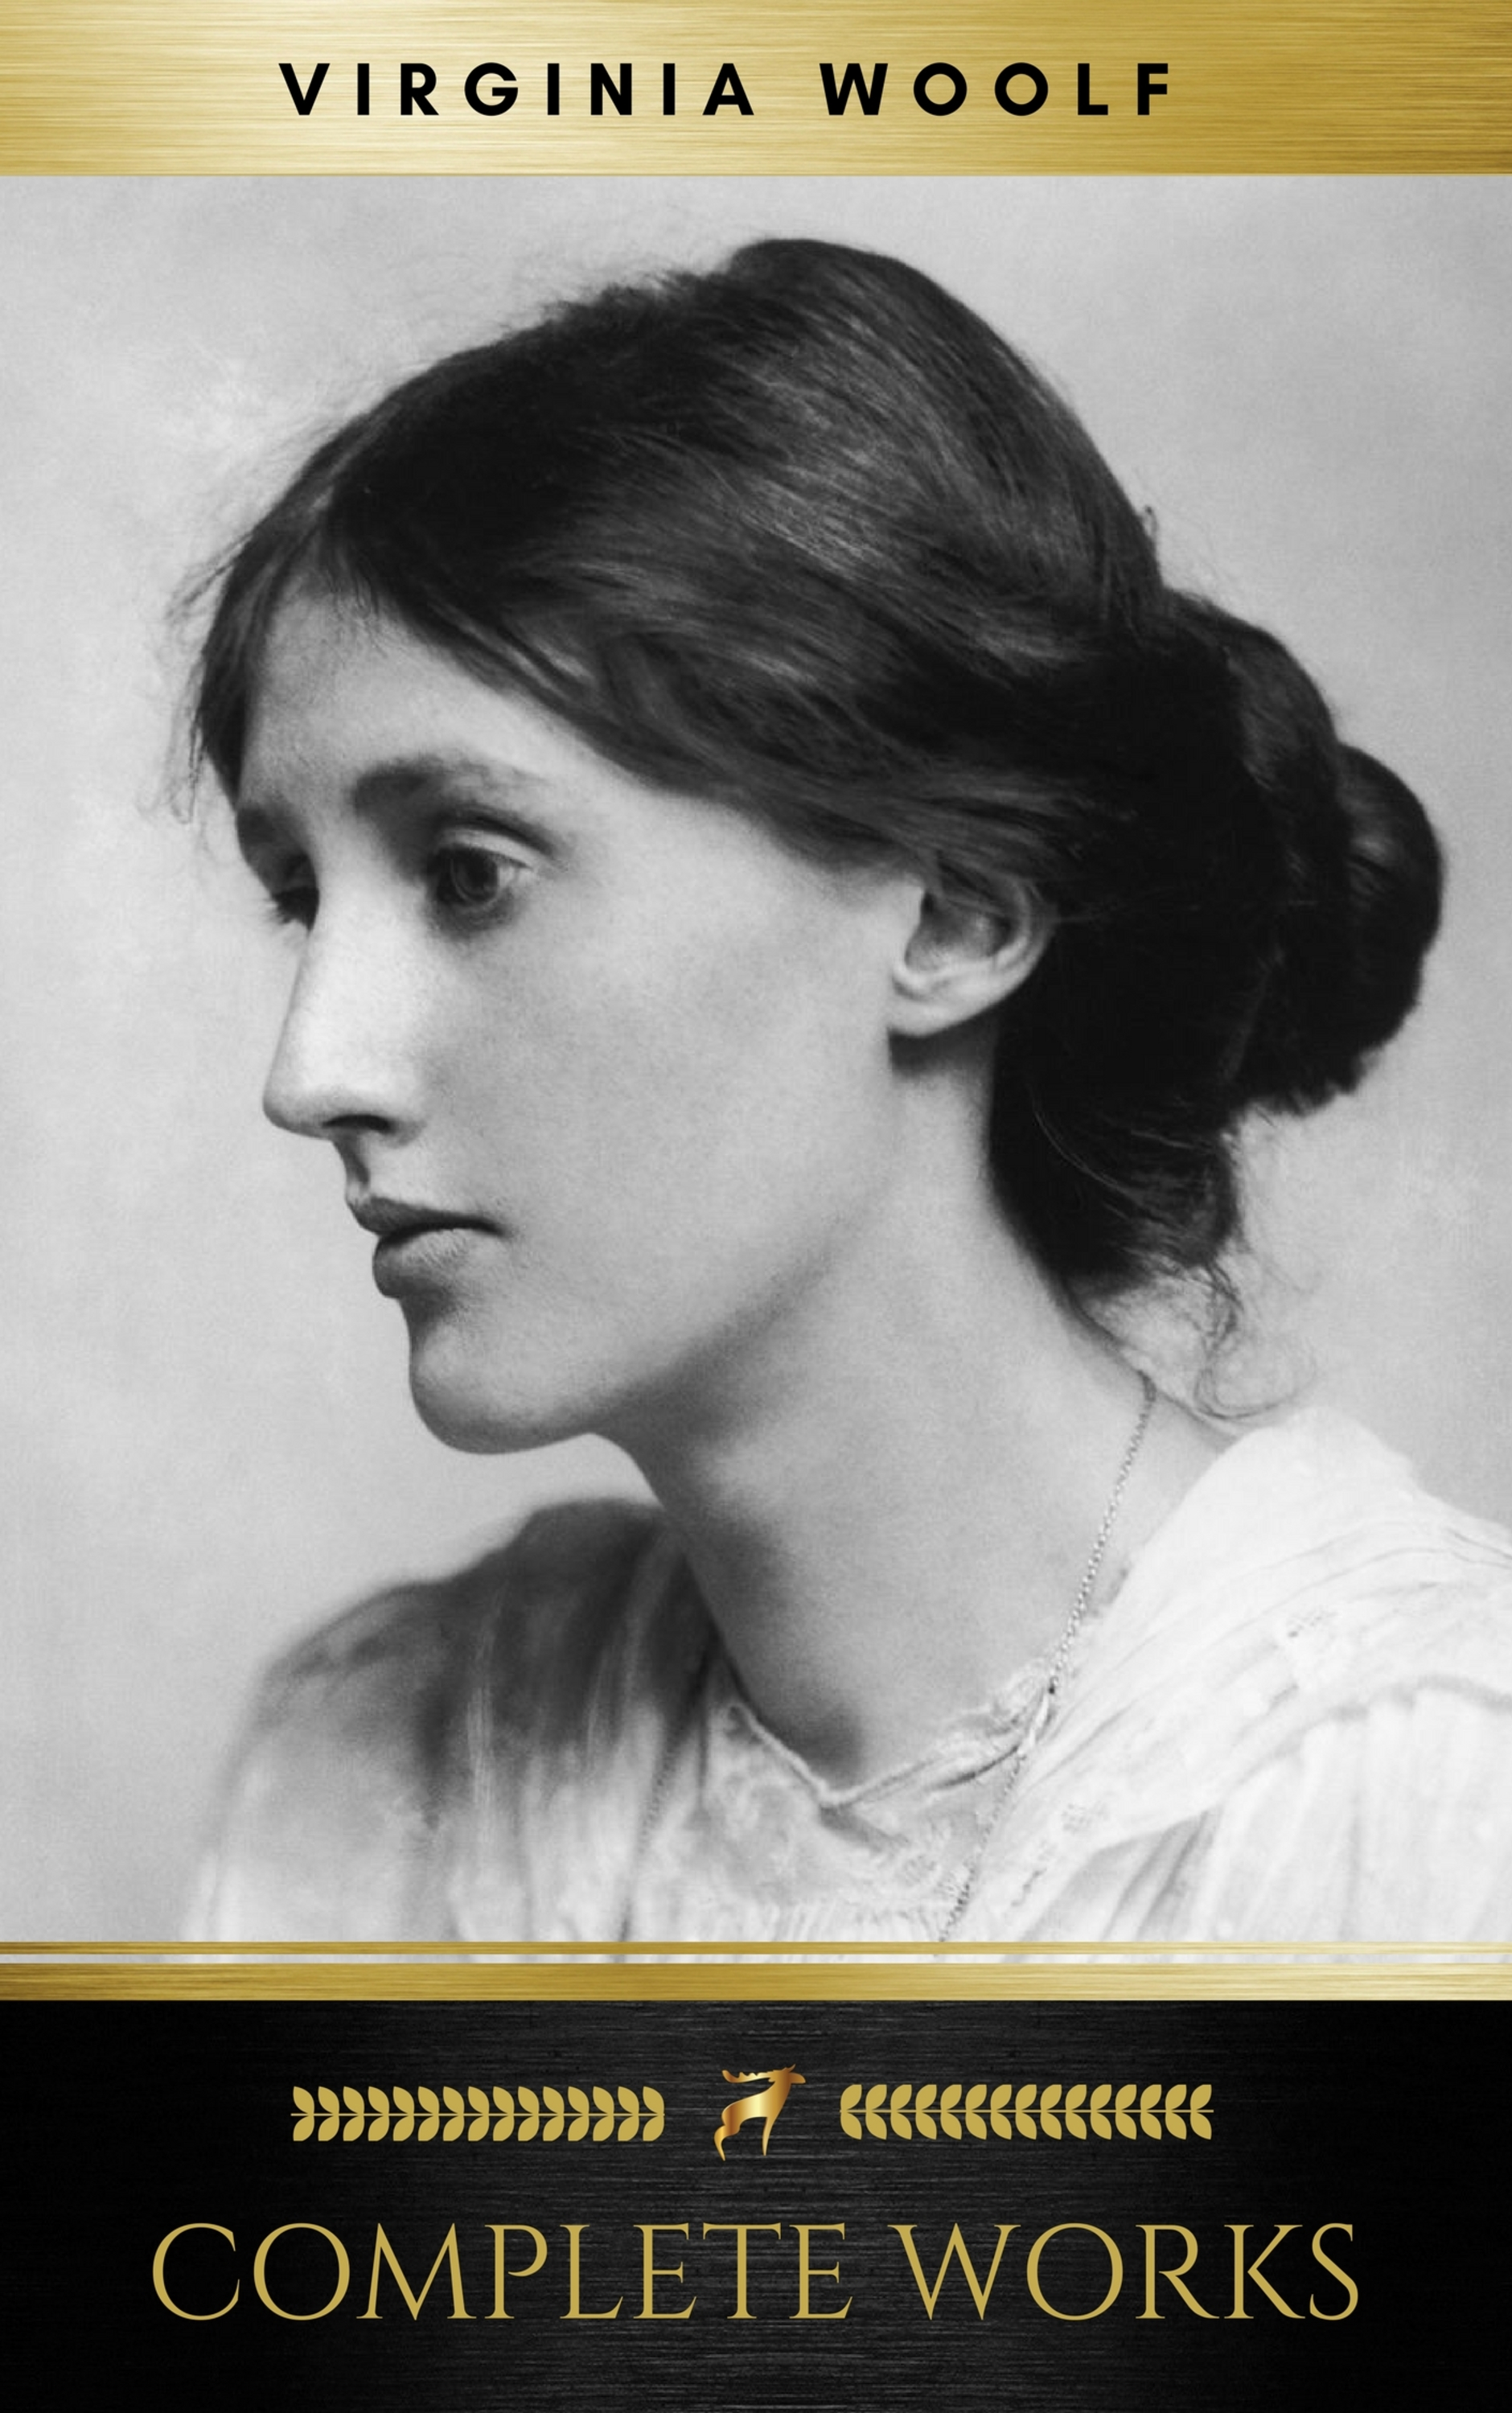 Virginia Woolf Virginia Woolf: Complete Works virginia woolf the complete novels of virginia woolf 9 unabridged novels